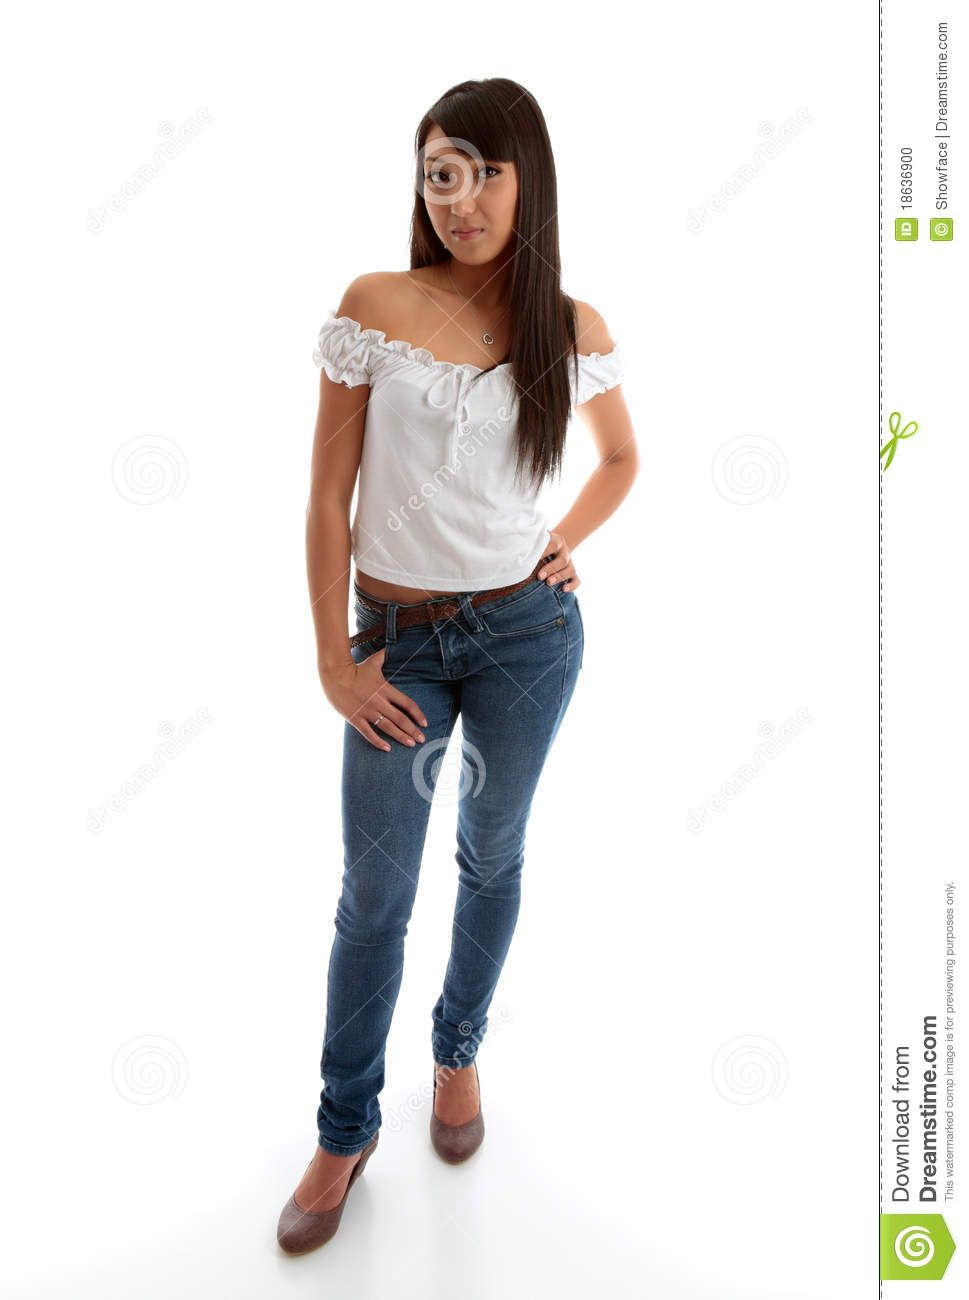 best of Wearing jeans Images young of girls